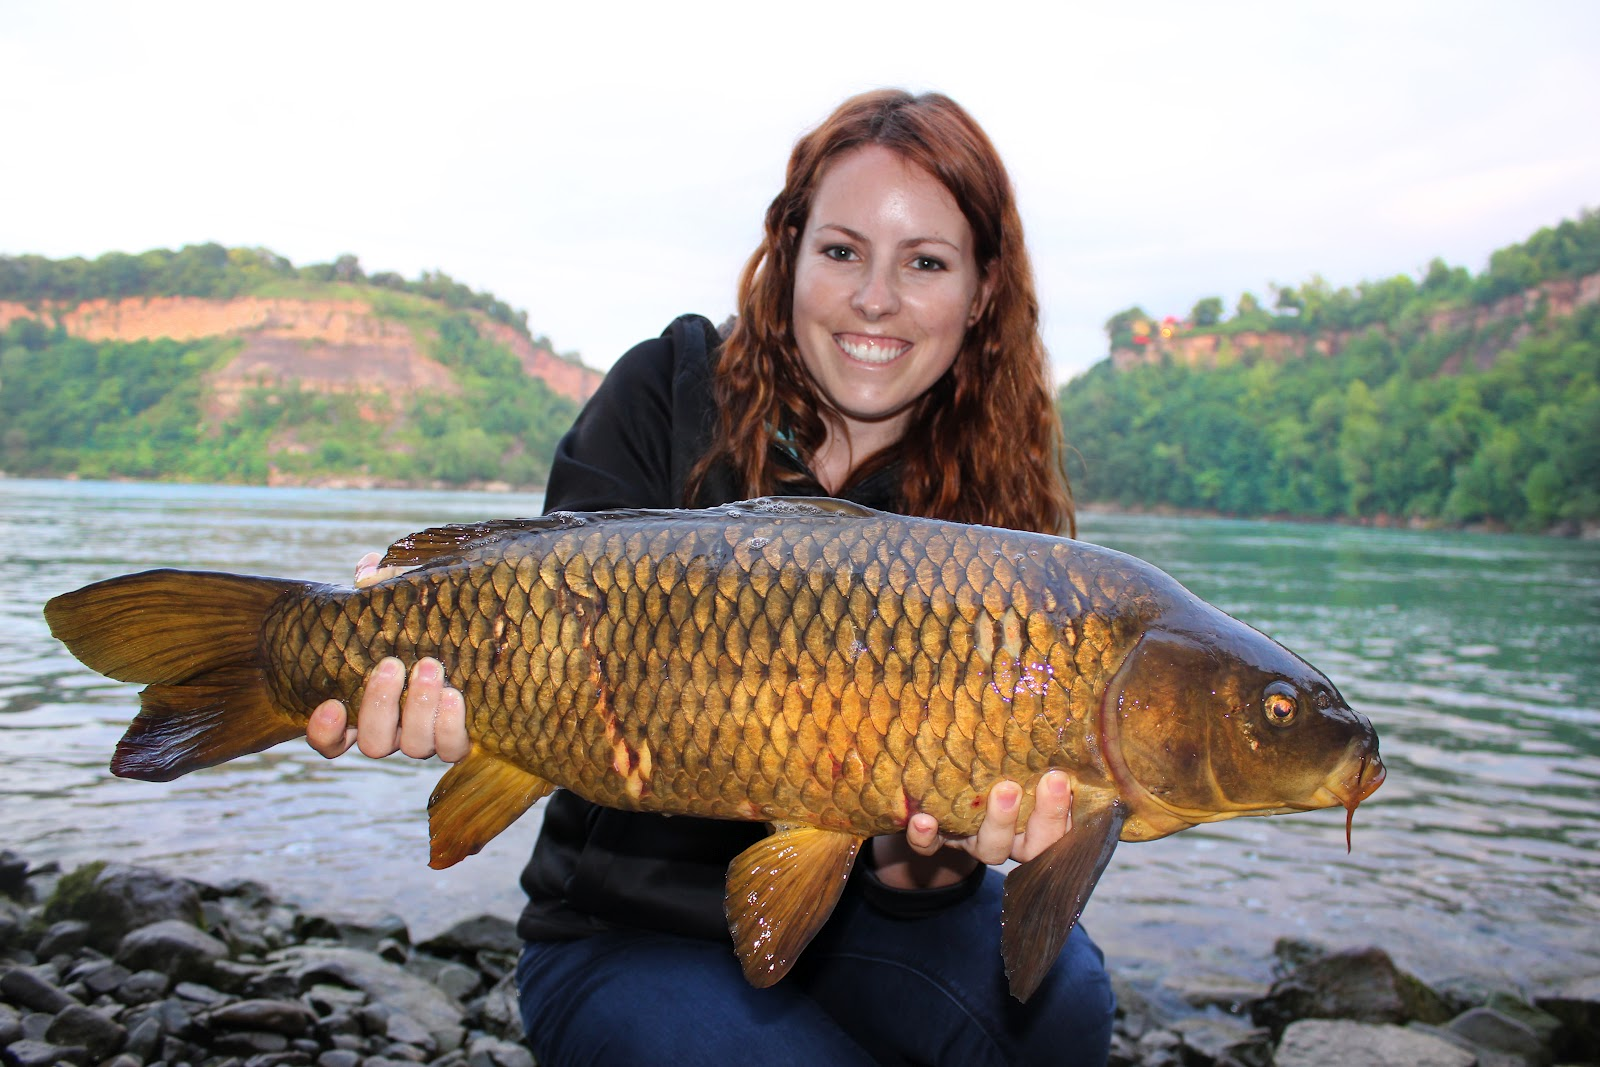 Firsts ontario carp new york smallies ashley rae for What does carp mean